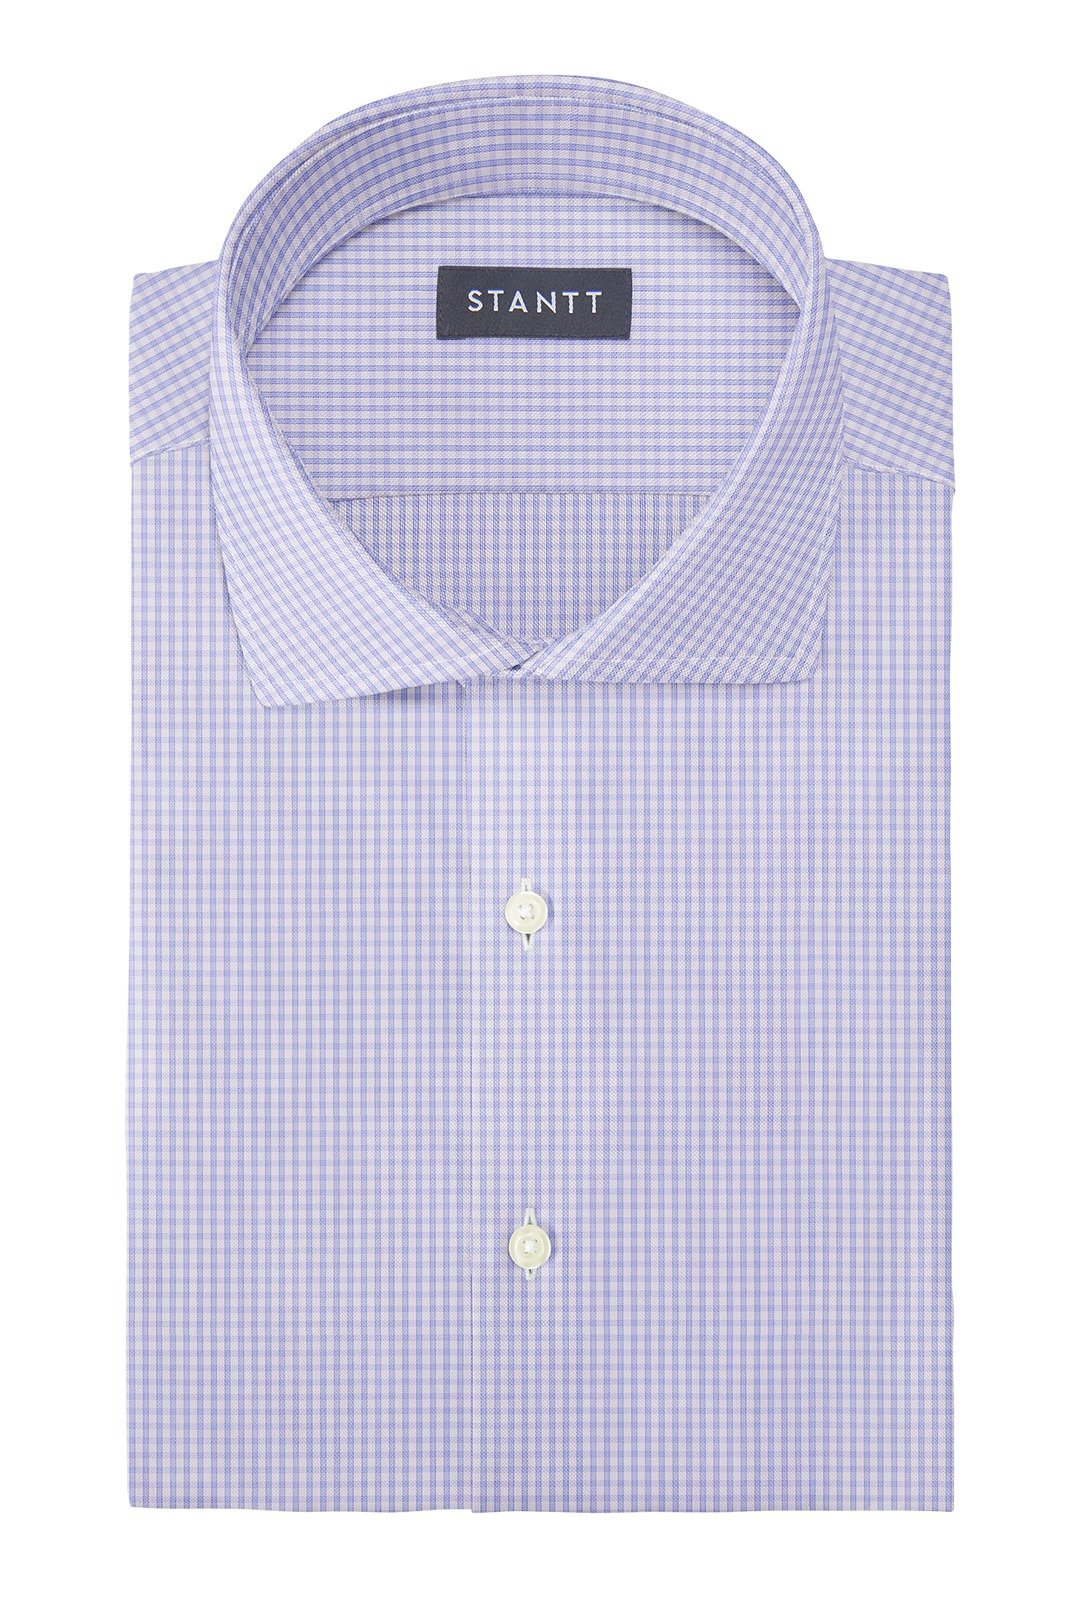 Wrinkle-Resistant Sky Blue Grid Check: Cutaway Collar, Barrel Cuff